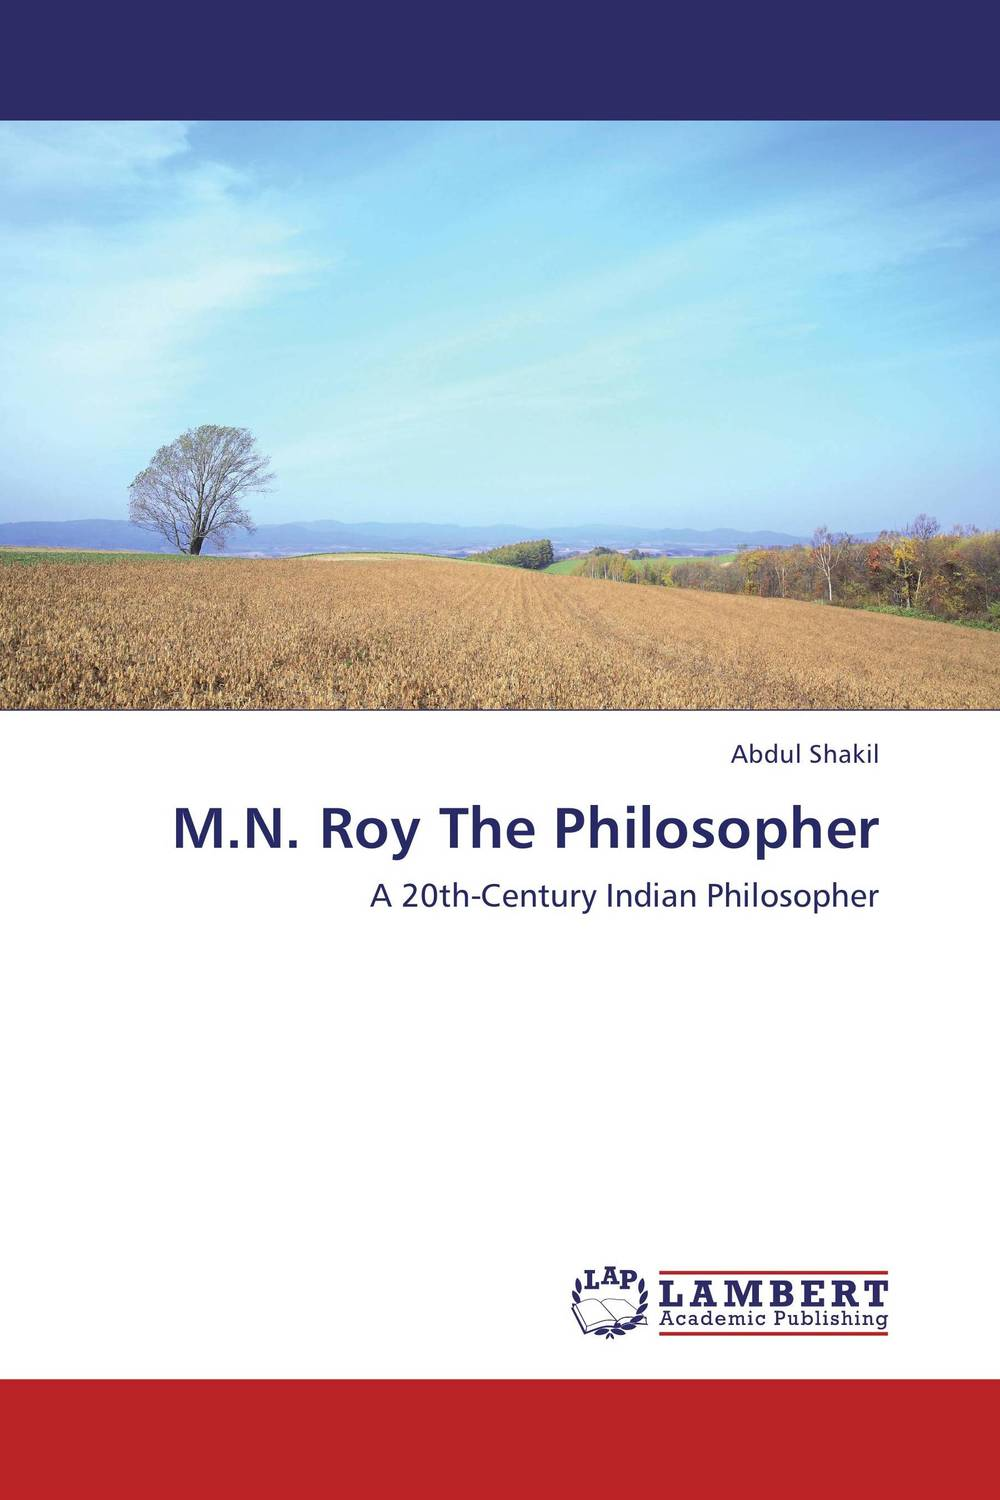 M.N. Roy The Philosopher m n roy the philosopher